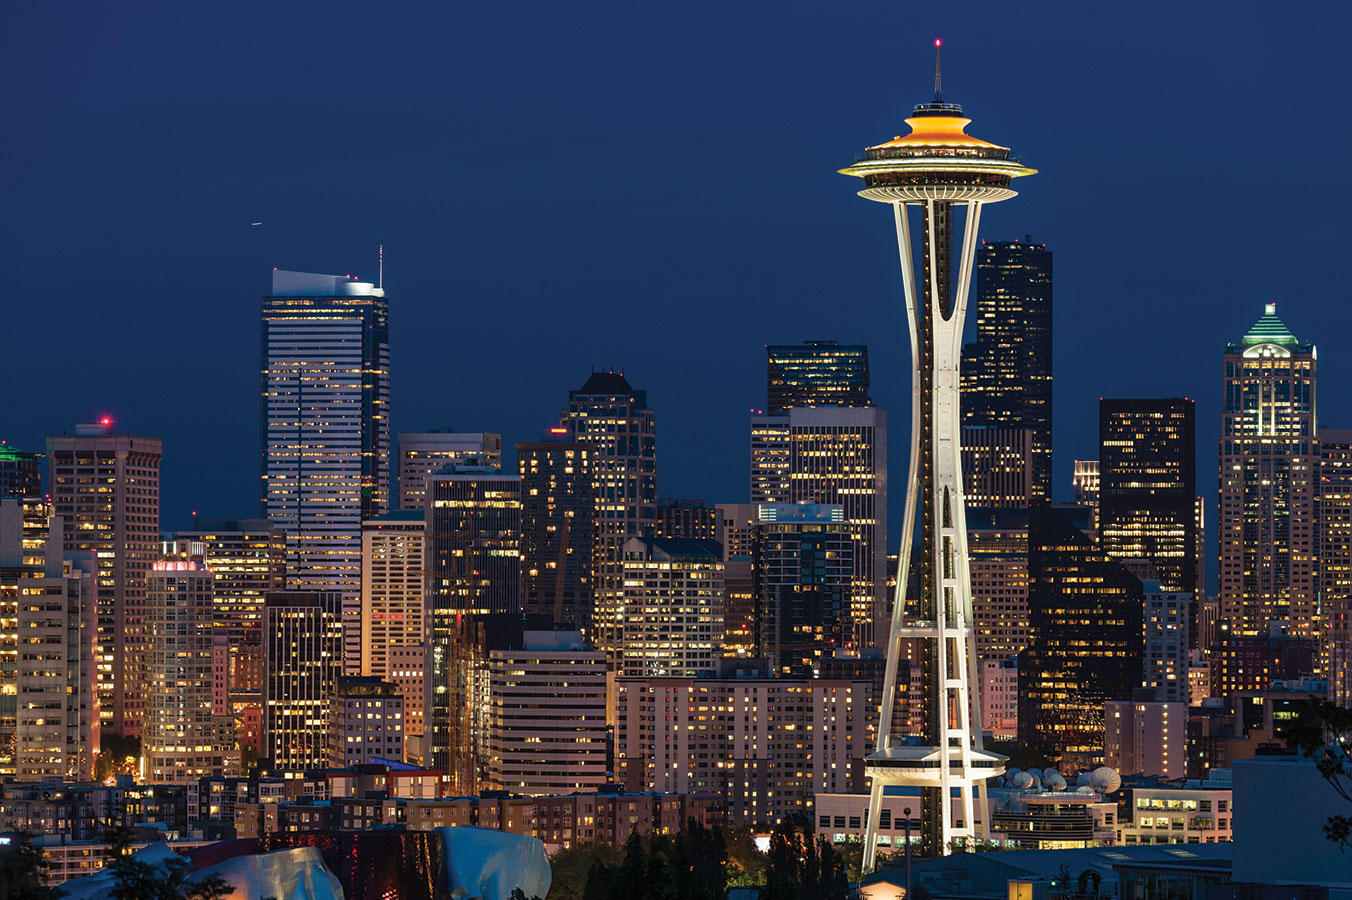 You don t want to be that local who has never experienced their city s most  famous tourist attraction  but let s face it  the Space Needle is expensive   Sky High  How to Do the Space Needle Right   ParentMap. Dinner Seattle Space Needle. Home Design Ideas